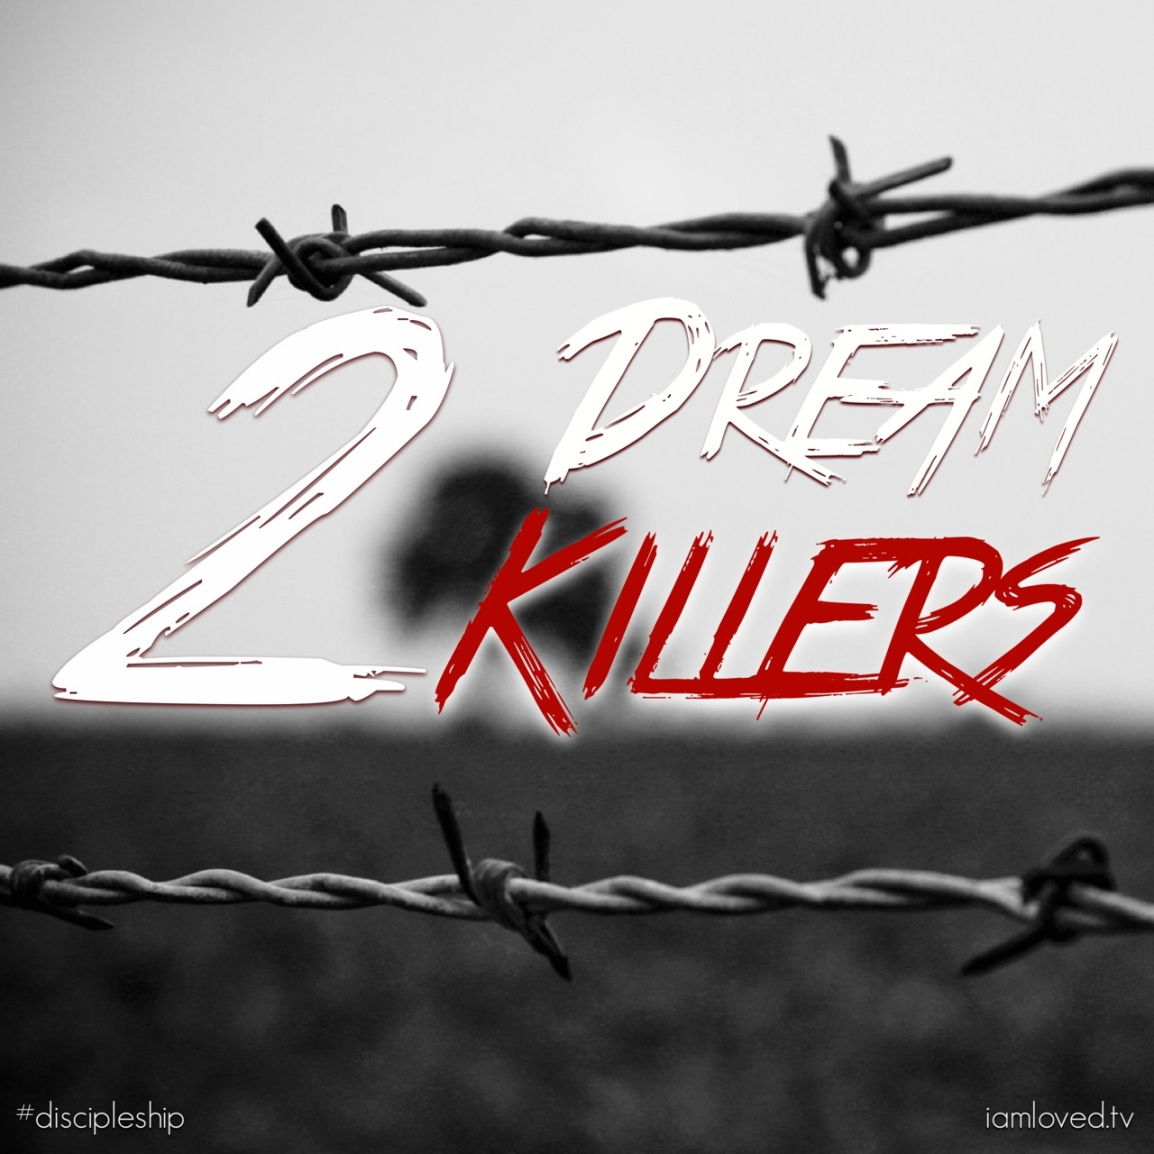 Watch Out For These 2 DreamKillers